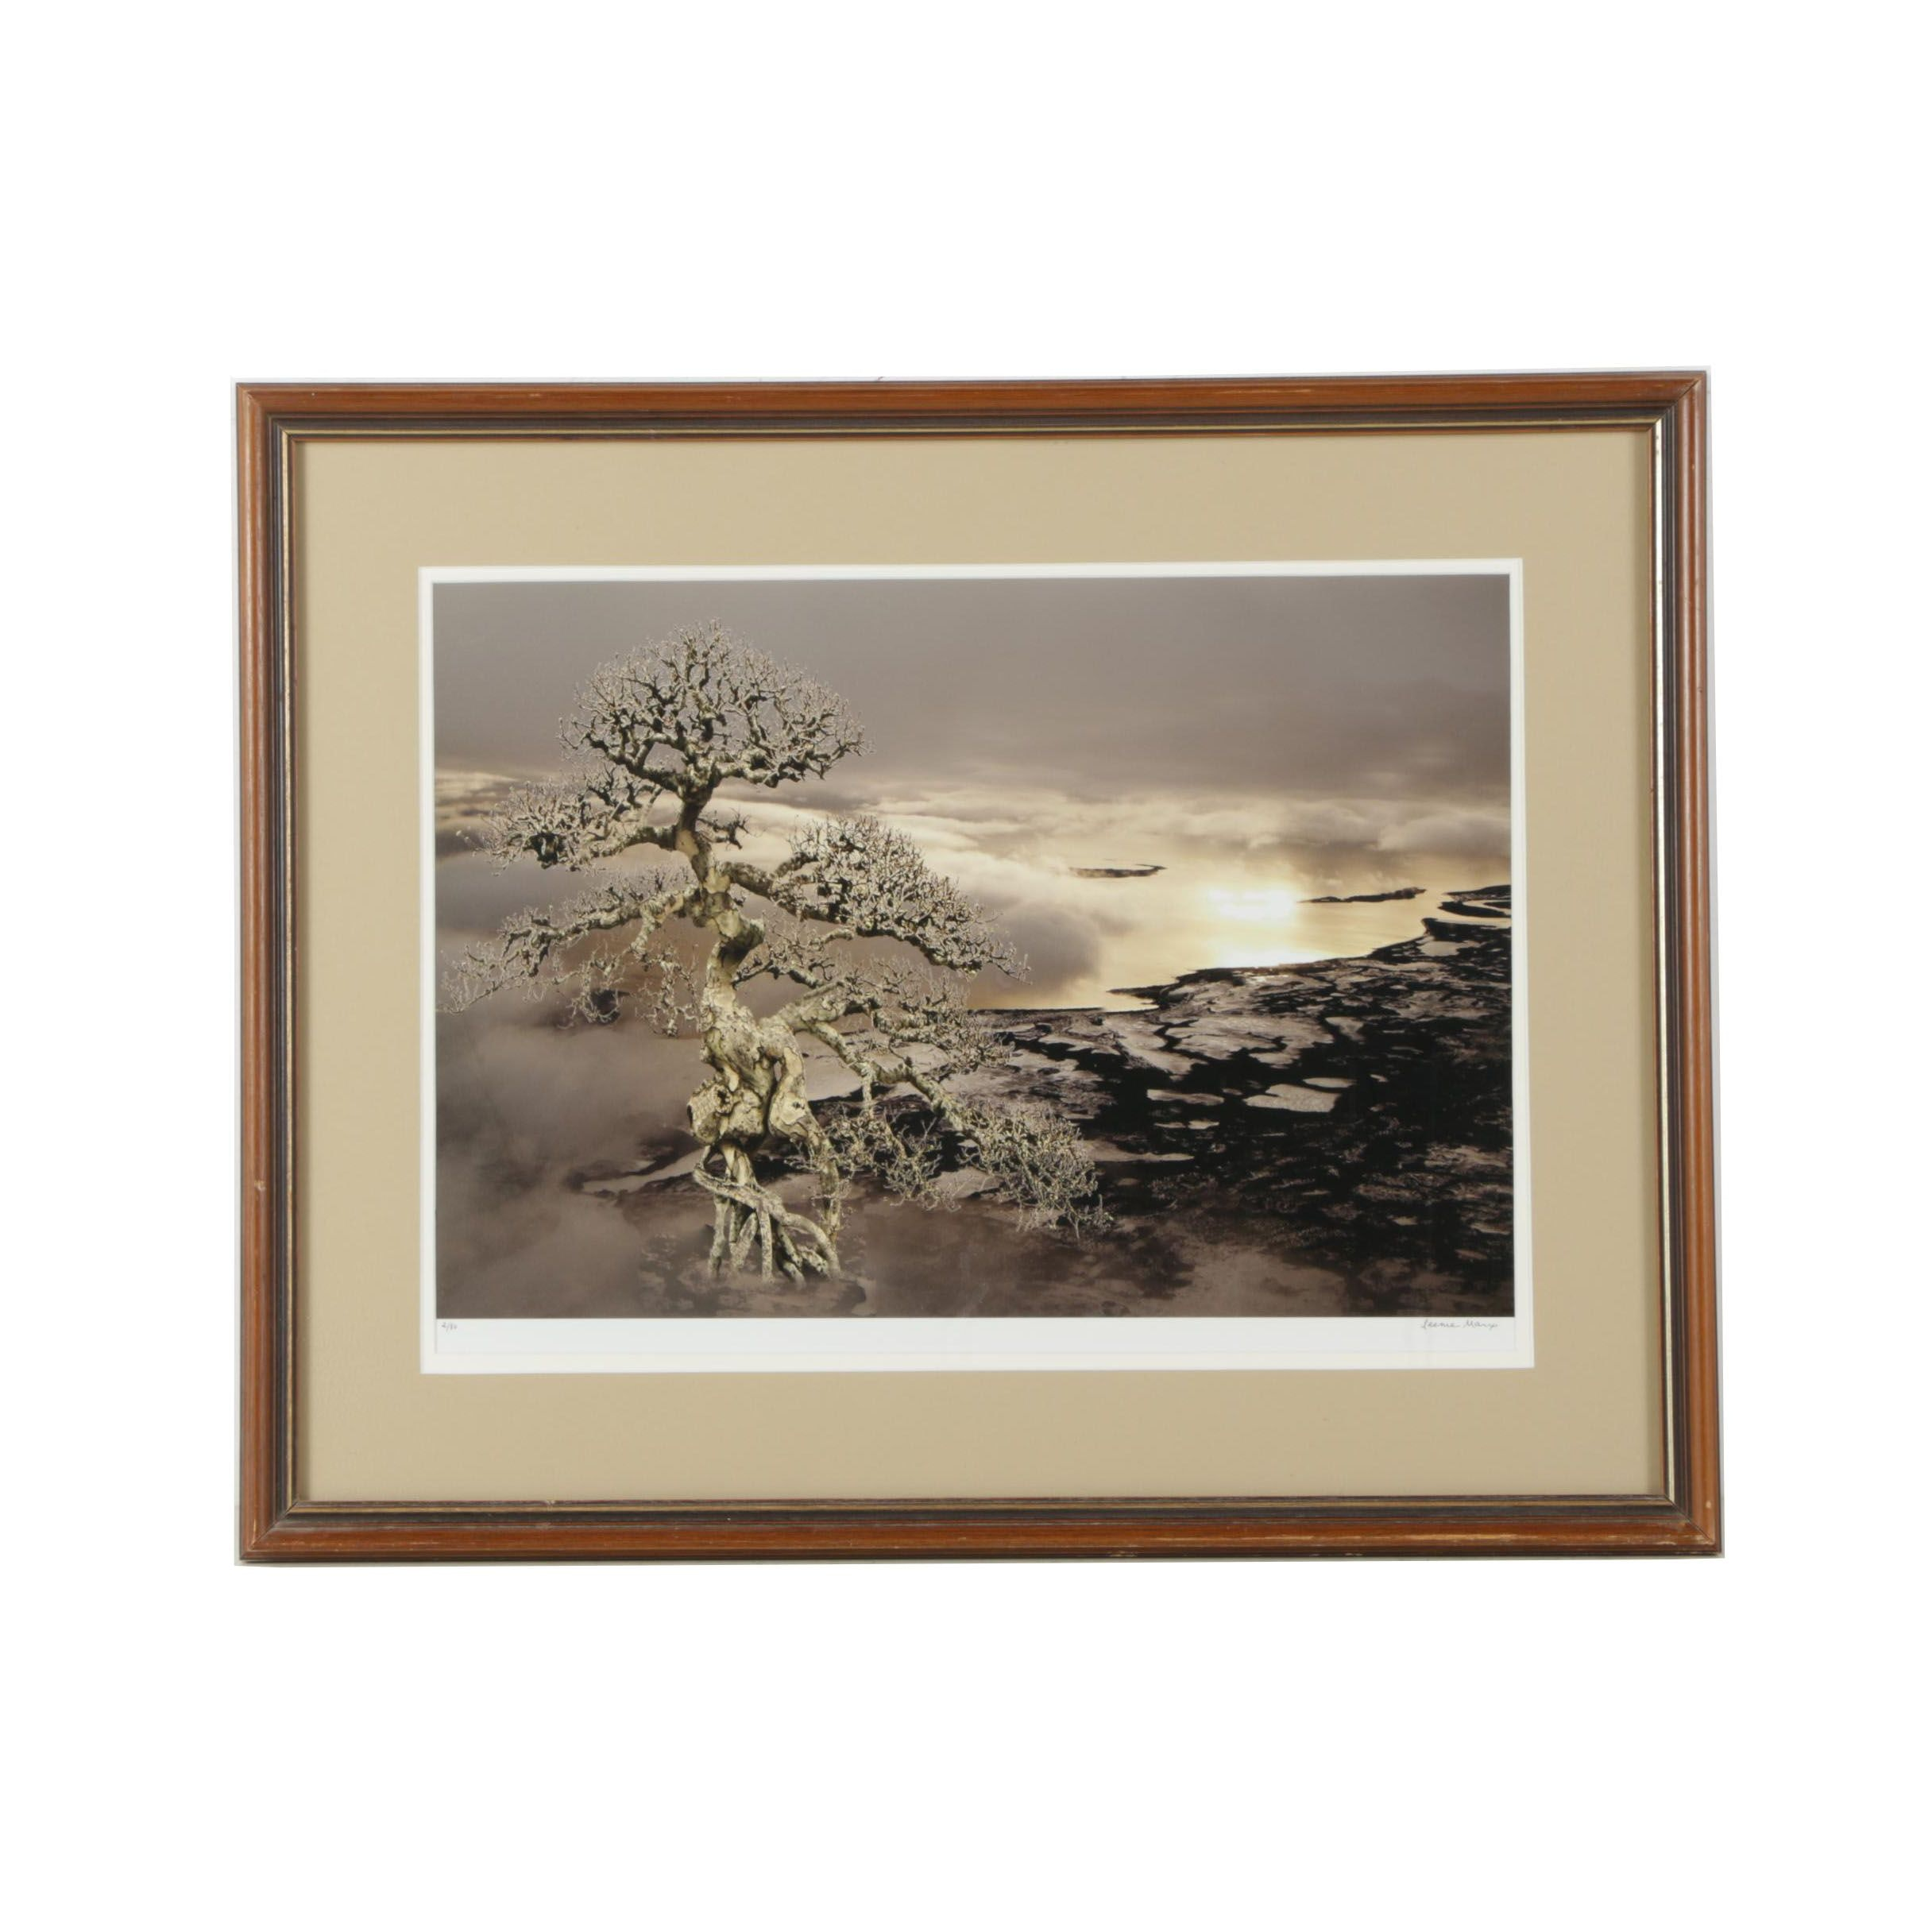 Limited Edition Giclee of a Winter Landscape